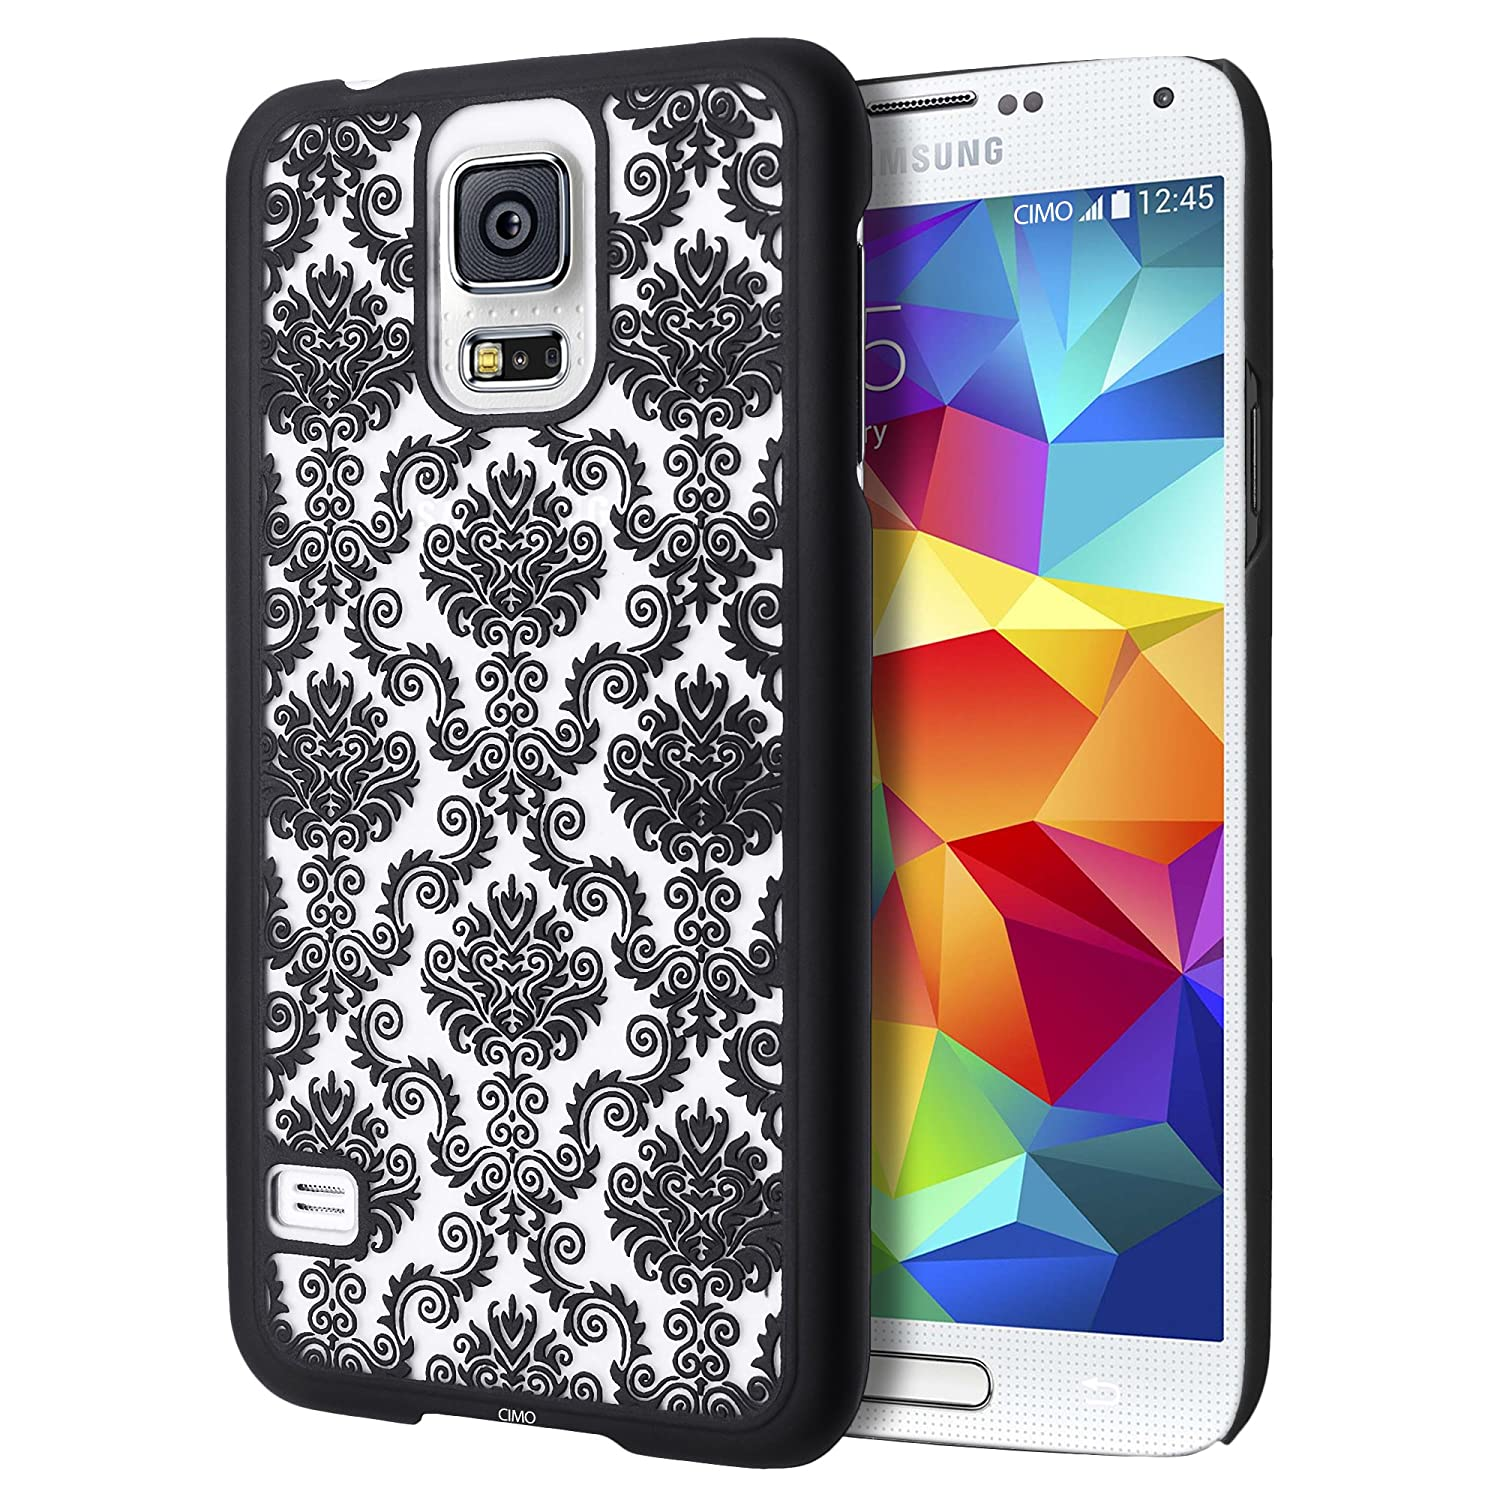 Cimo Samsung Galaxy S5 Case [Damask Series] Design Pattern Rubber Coating Premium ULTRA SLIM Hard Cover for Galaxy S5 / Galaxy SV / Galaxy S V (2014) - Black